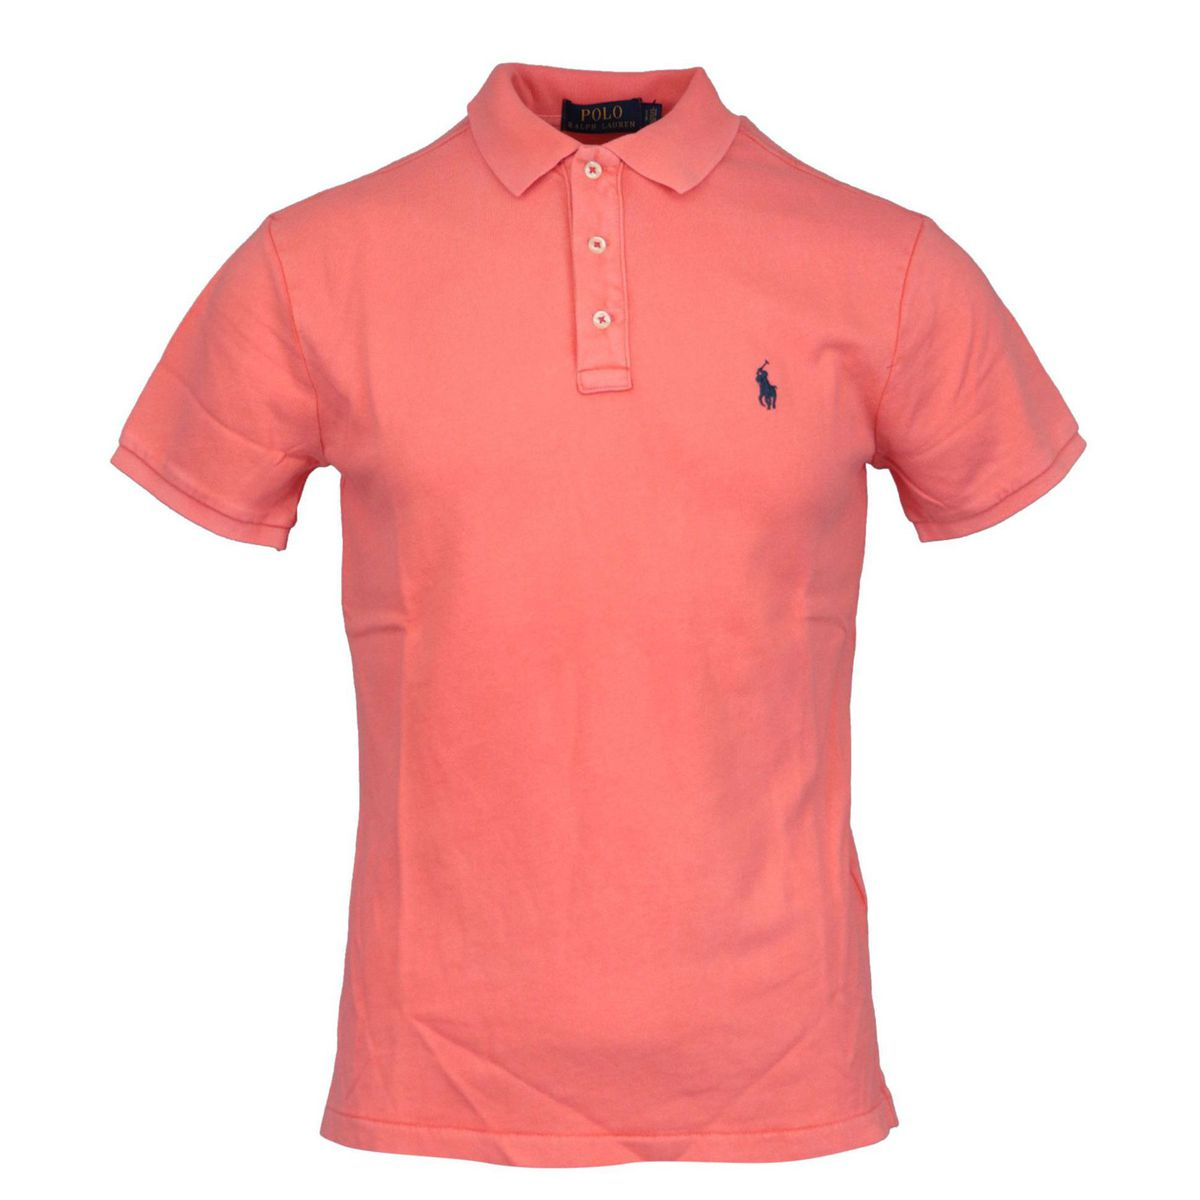 Three button cotton polo shirt with contrasting logo embroidery Salmon Polo Ralph Lauren